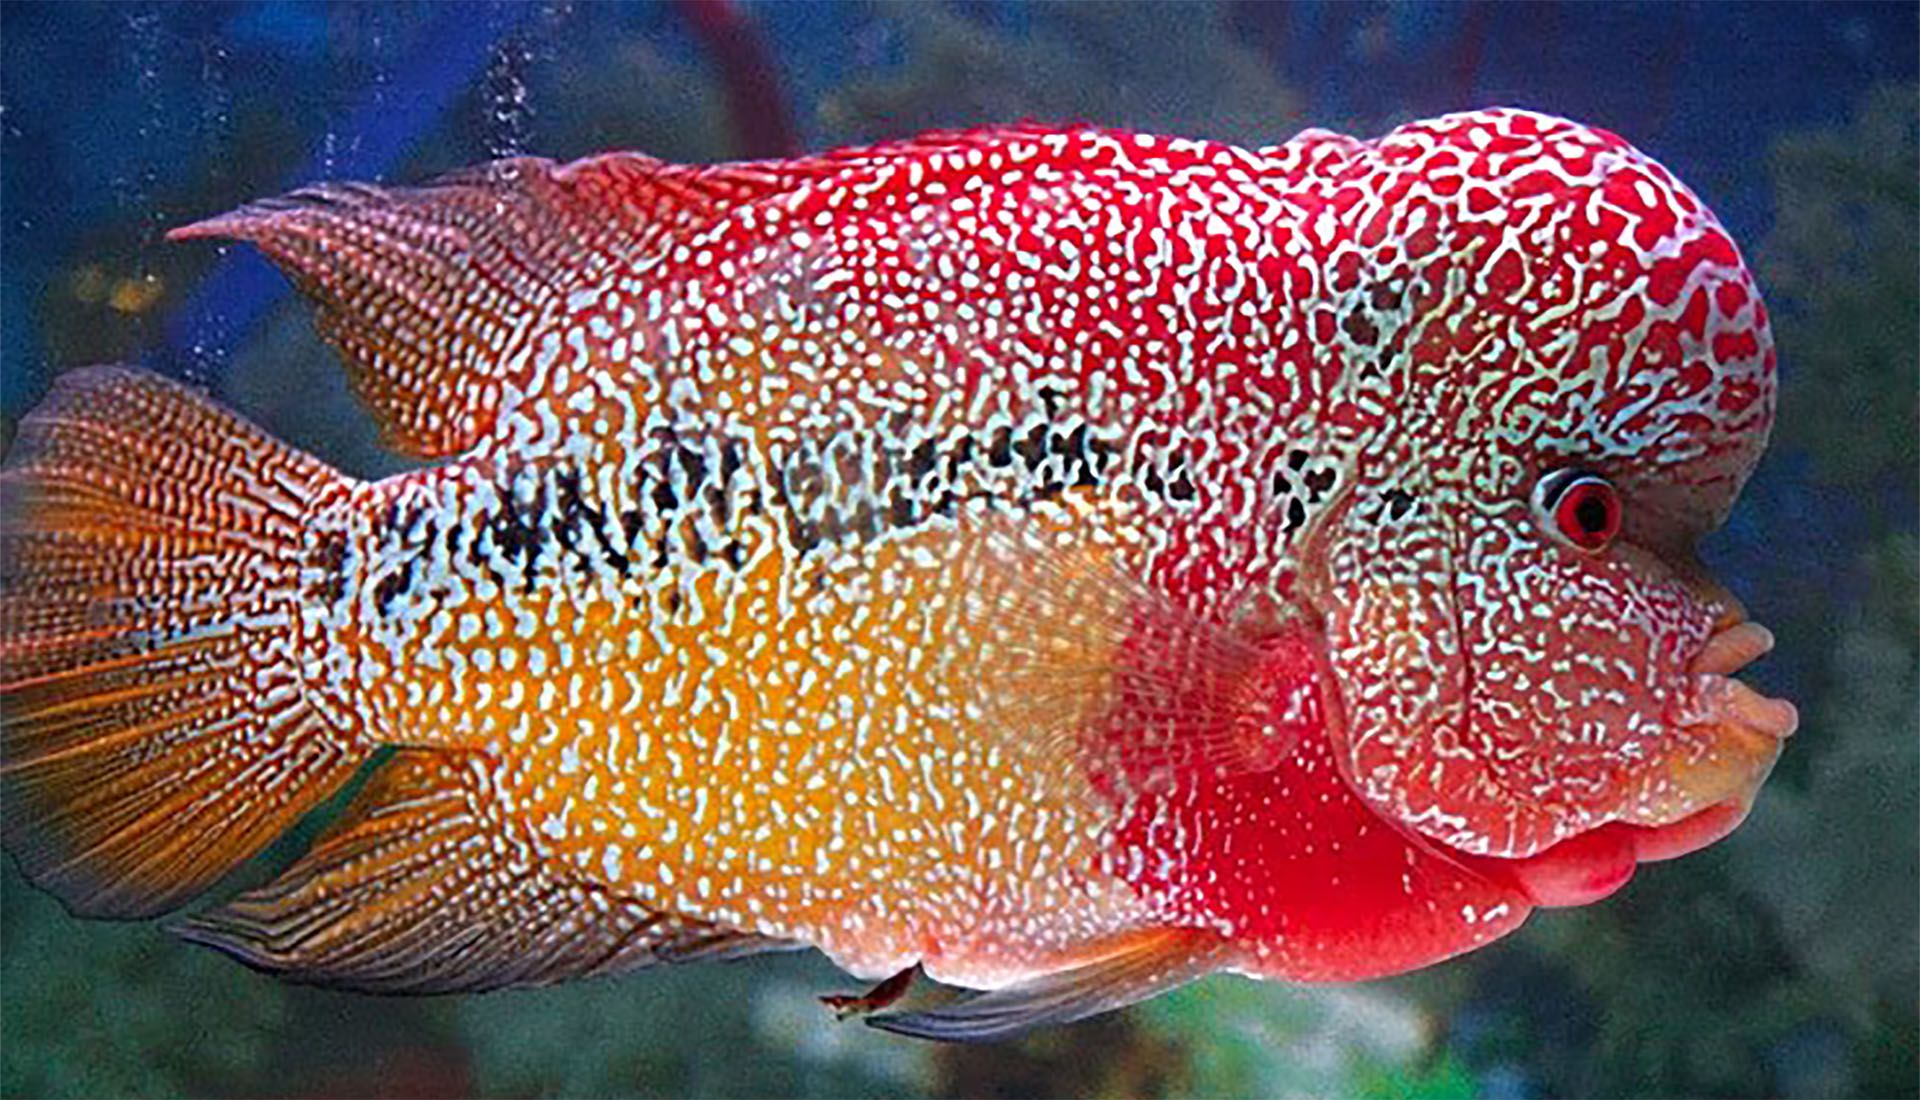 Life cycle and basics about Flowerhorn Fish Fish